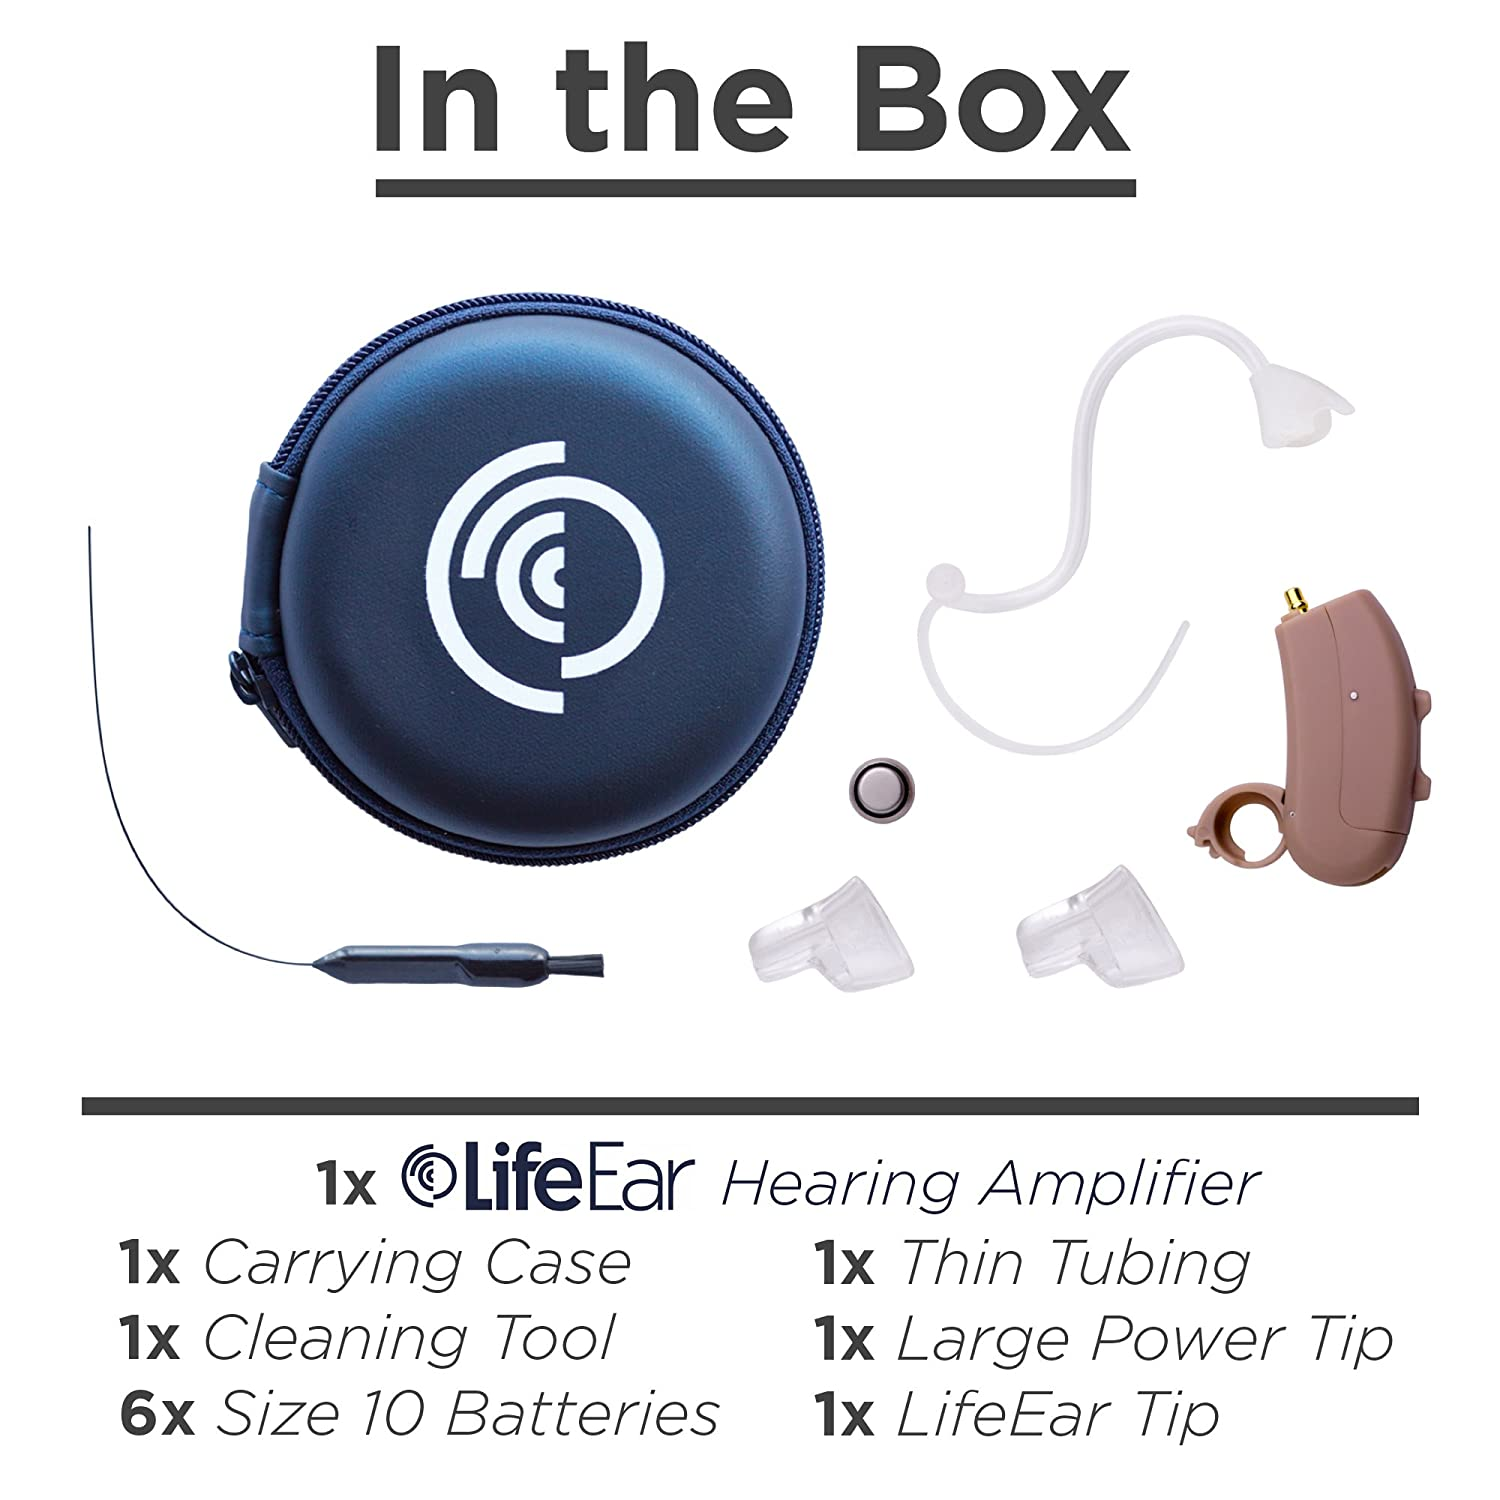 Empower Hearing Amplifier Digital Noise Reduction Living Aids Amplifiers Accessories Feedback Cancellation Enhances Speech 4 Program Nearly Invisible Behind The Ear 12 Channel Device